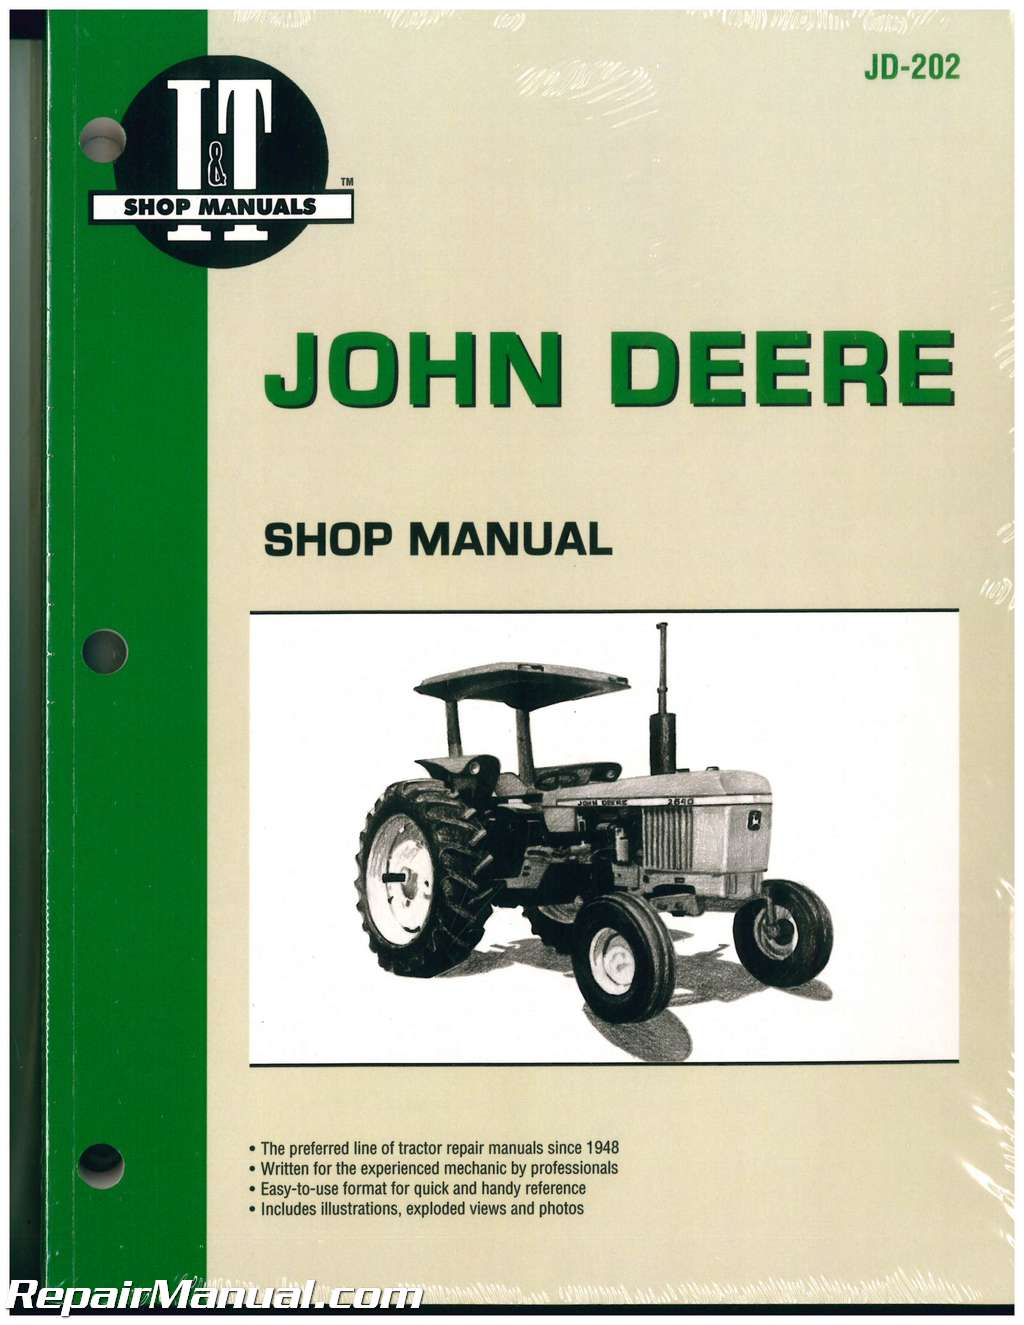 1951 John Deere B Wiring Diagram Library F935 Tractor Manual 2040 2510 2520 2240 2440 2630 2640 4040 Bosch Alternator